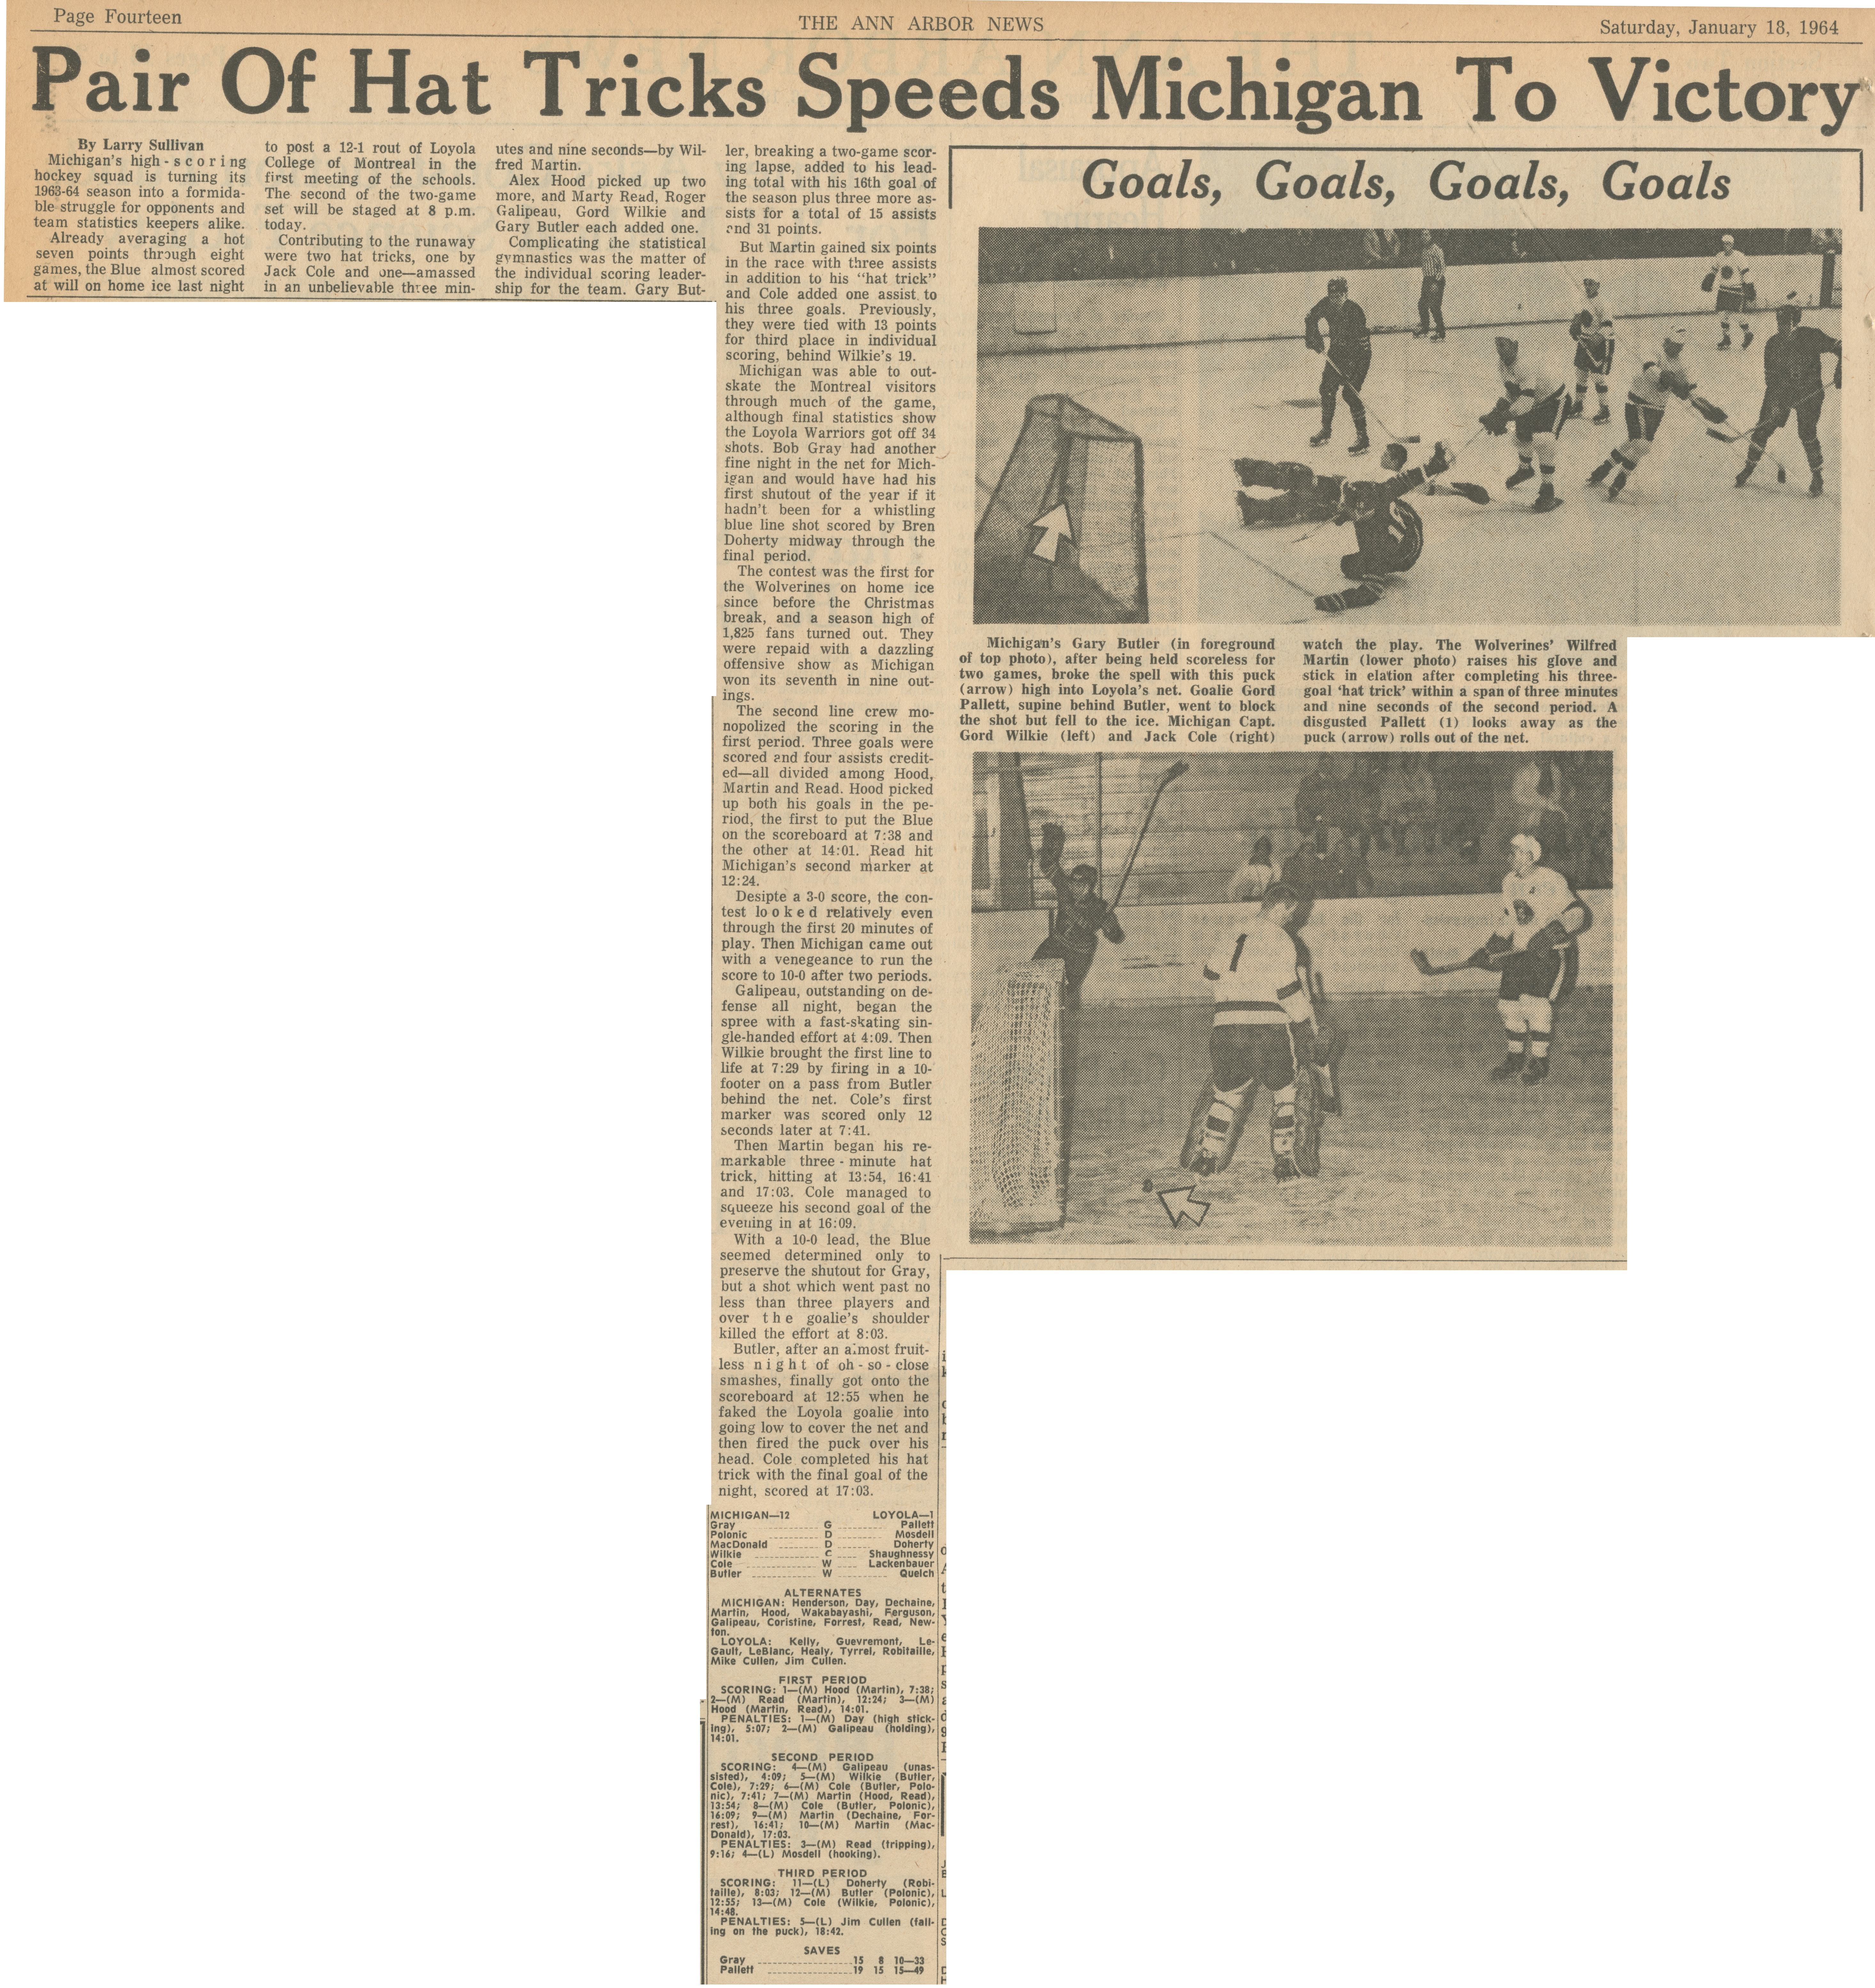 Pair Of Hat Tricks Speeds Michigan To Victory image